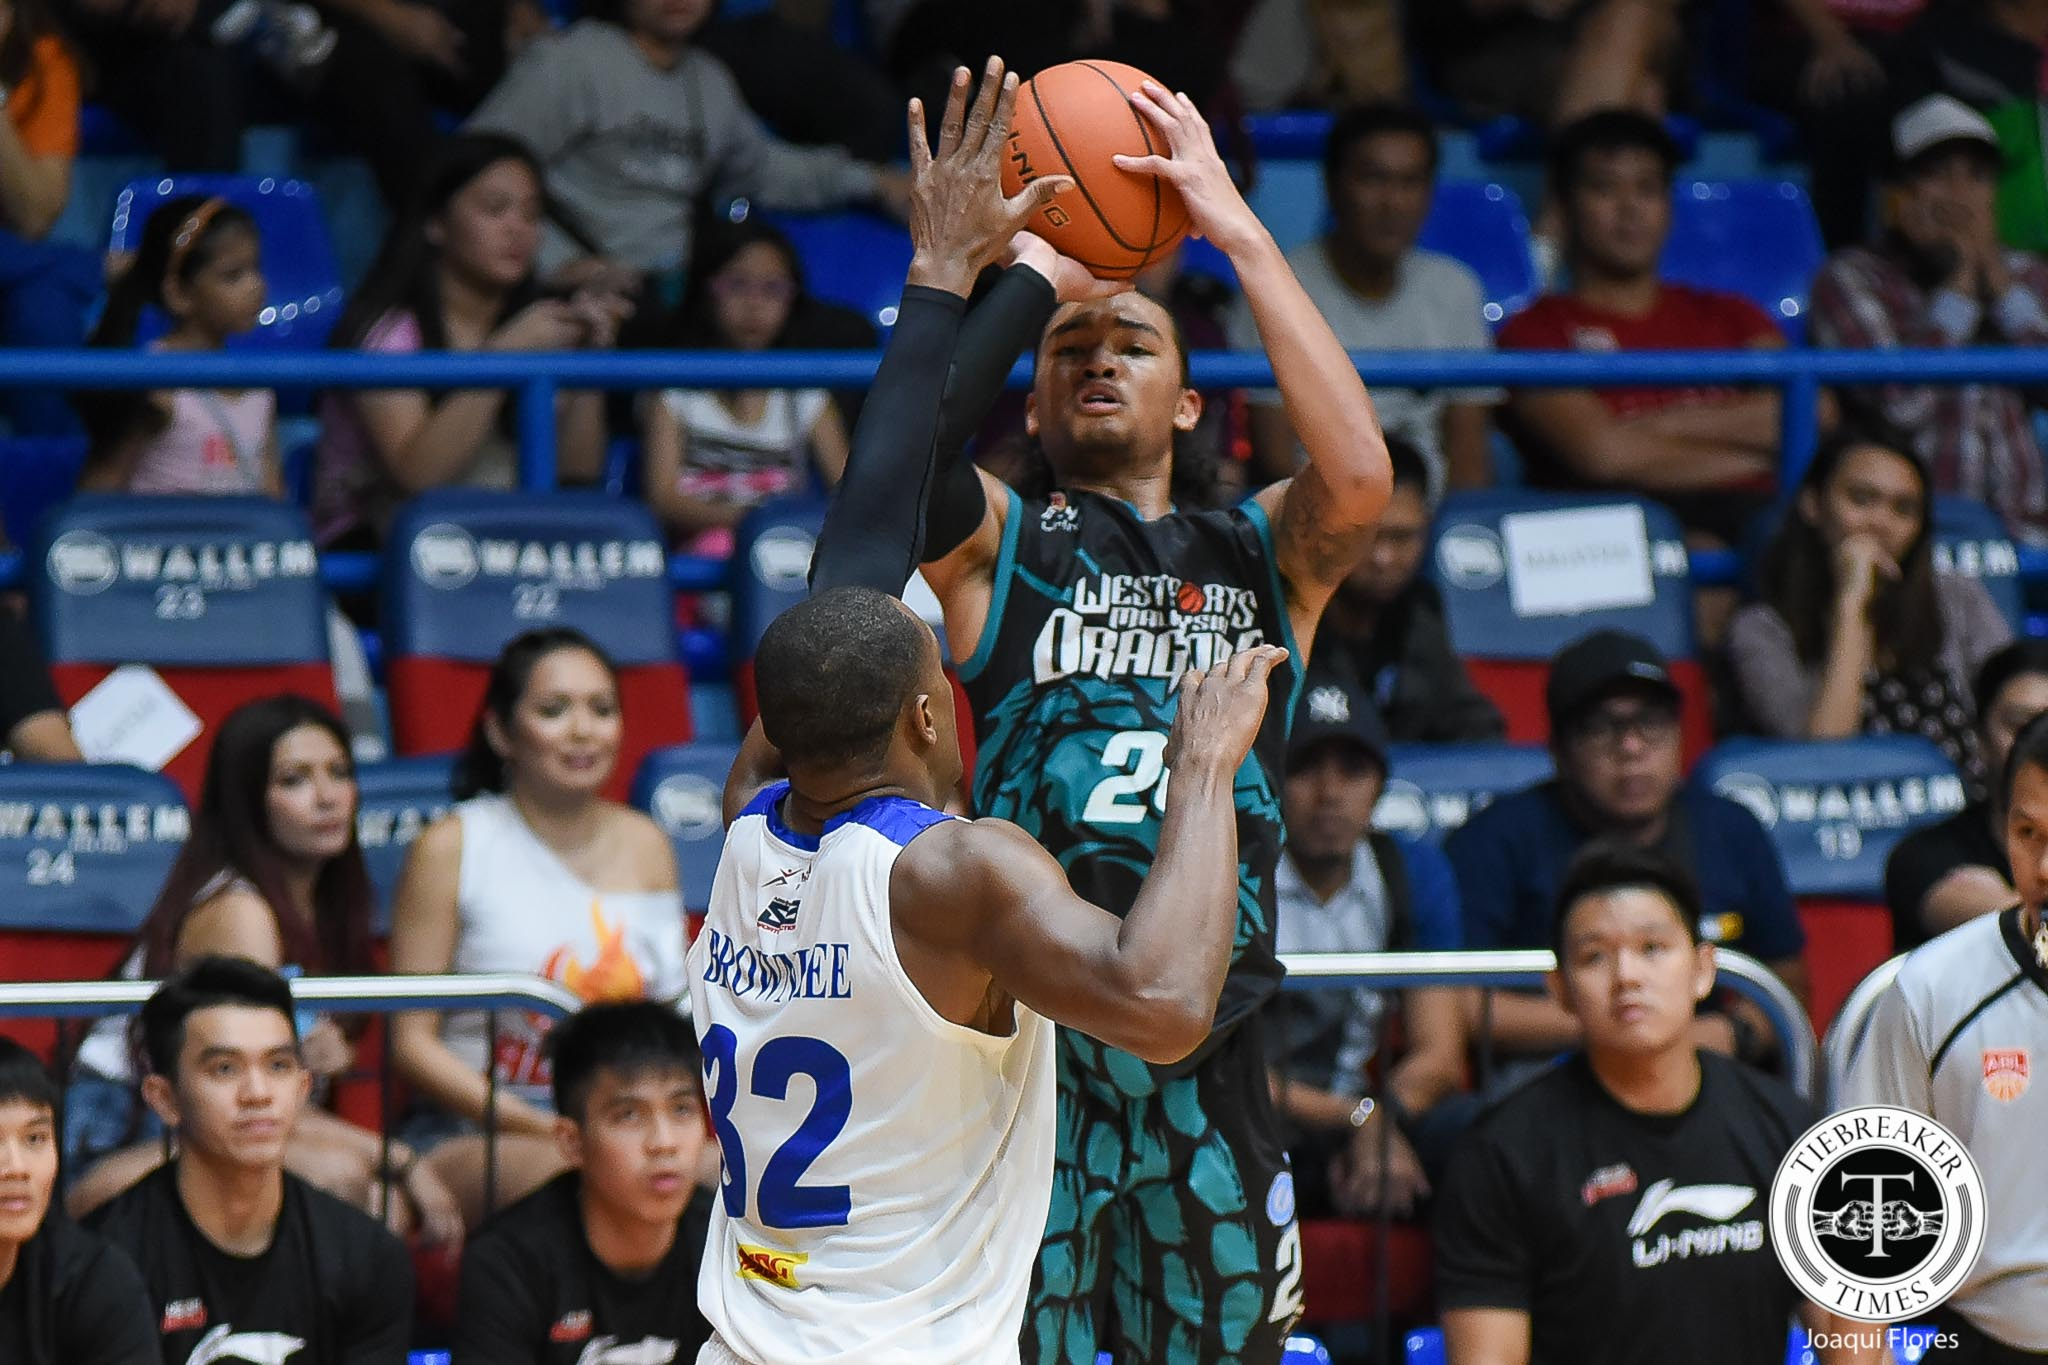 Philippine Sports News - Tiebreaker Times After long layoff, Joshua Munzon glad to be back with Westsports Malaysia ABL Basketball News  Westsports Malaysia Dragons Joshua Munzon 2017-18 ABL Season